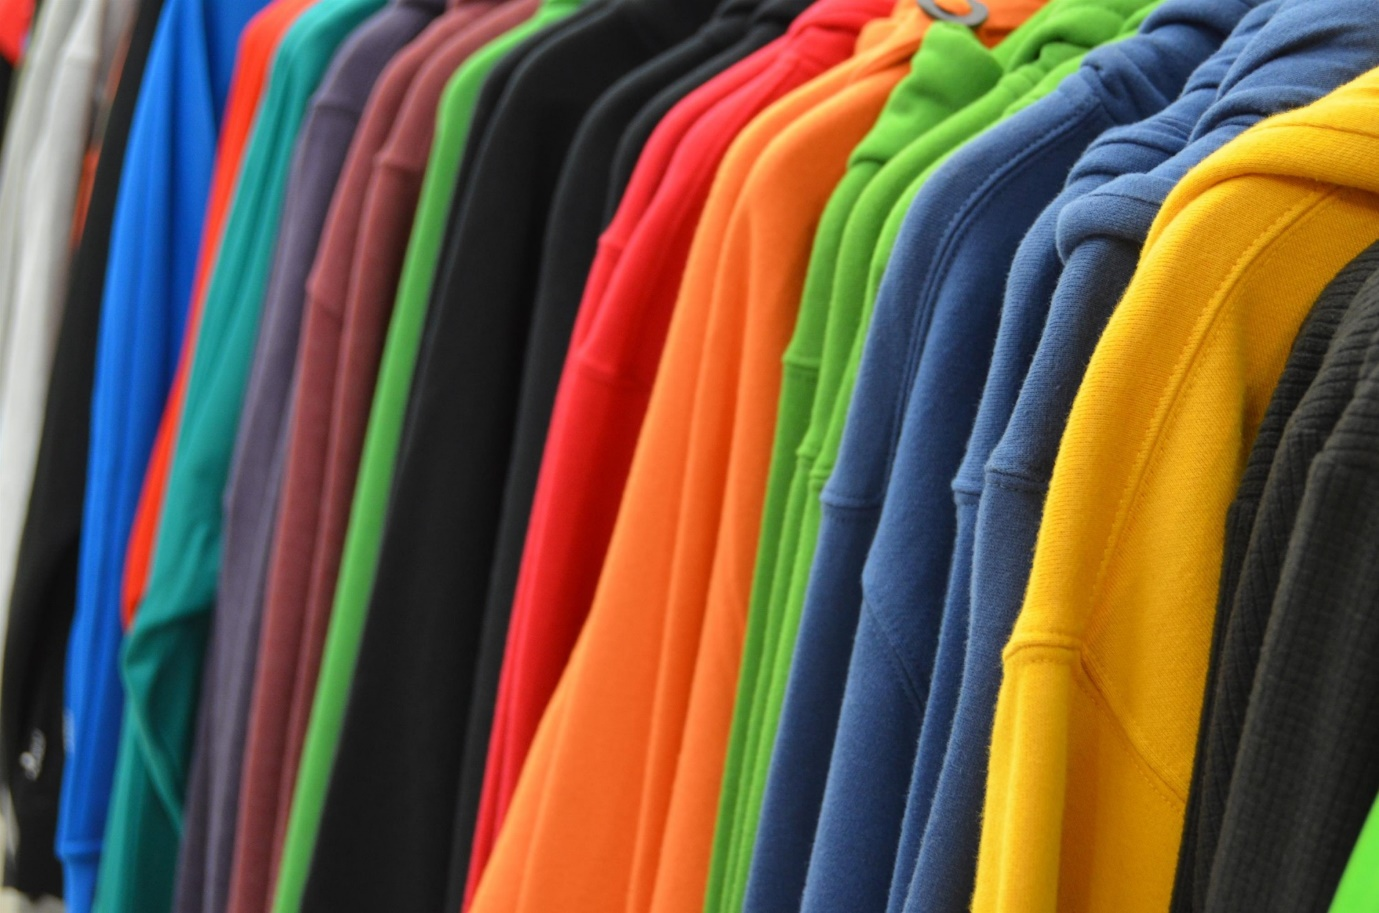 Benefits of a Capsule Wardrobe for Men